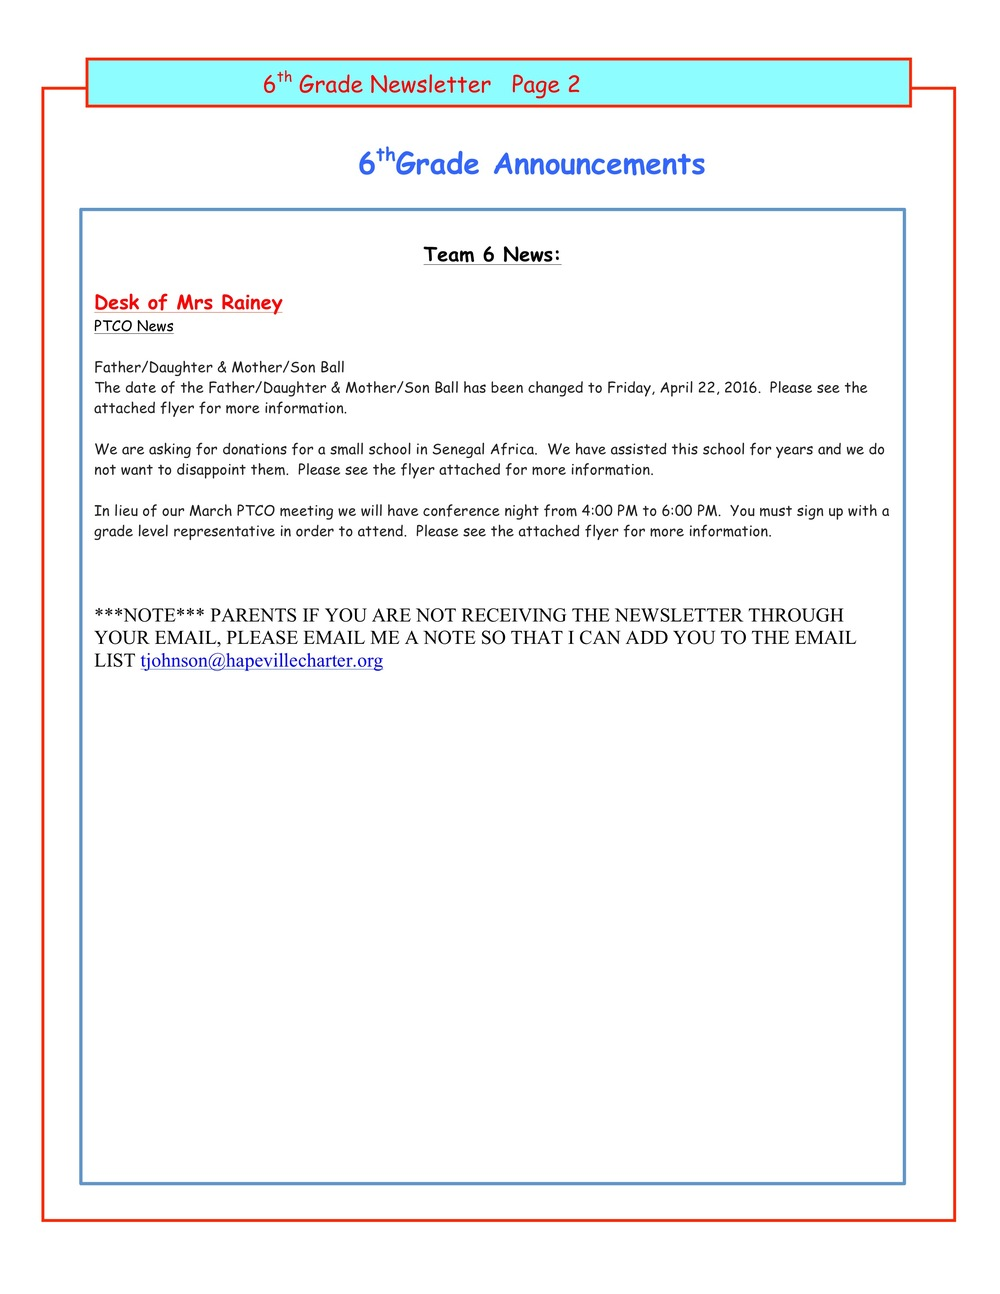 Newsletter Image6th Grade Newsletter 3.21.2016 2.jpeg